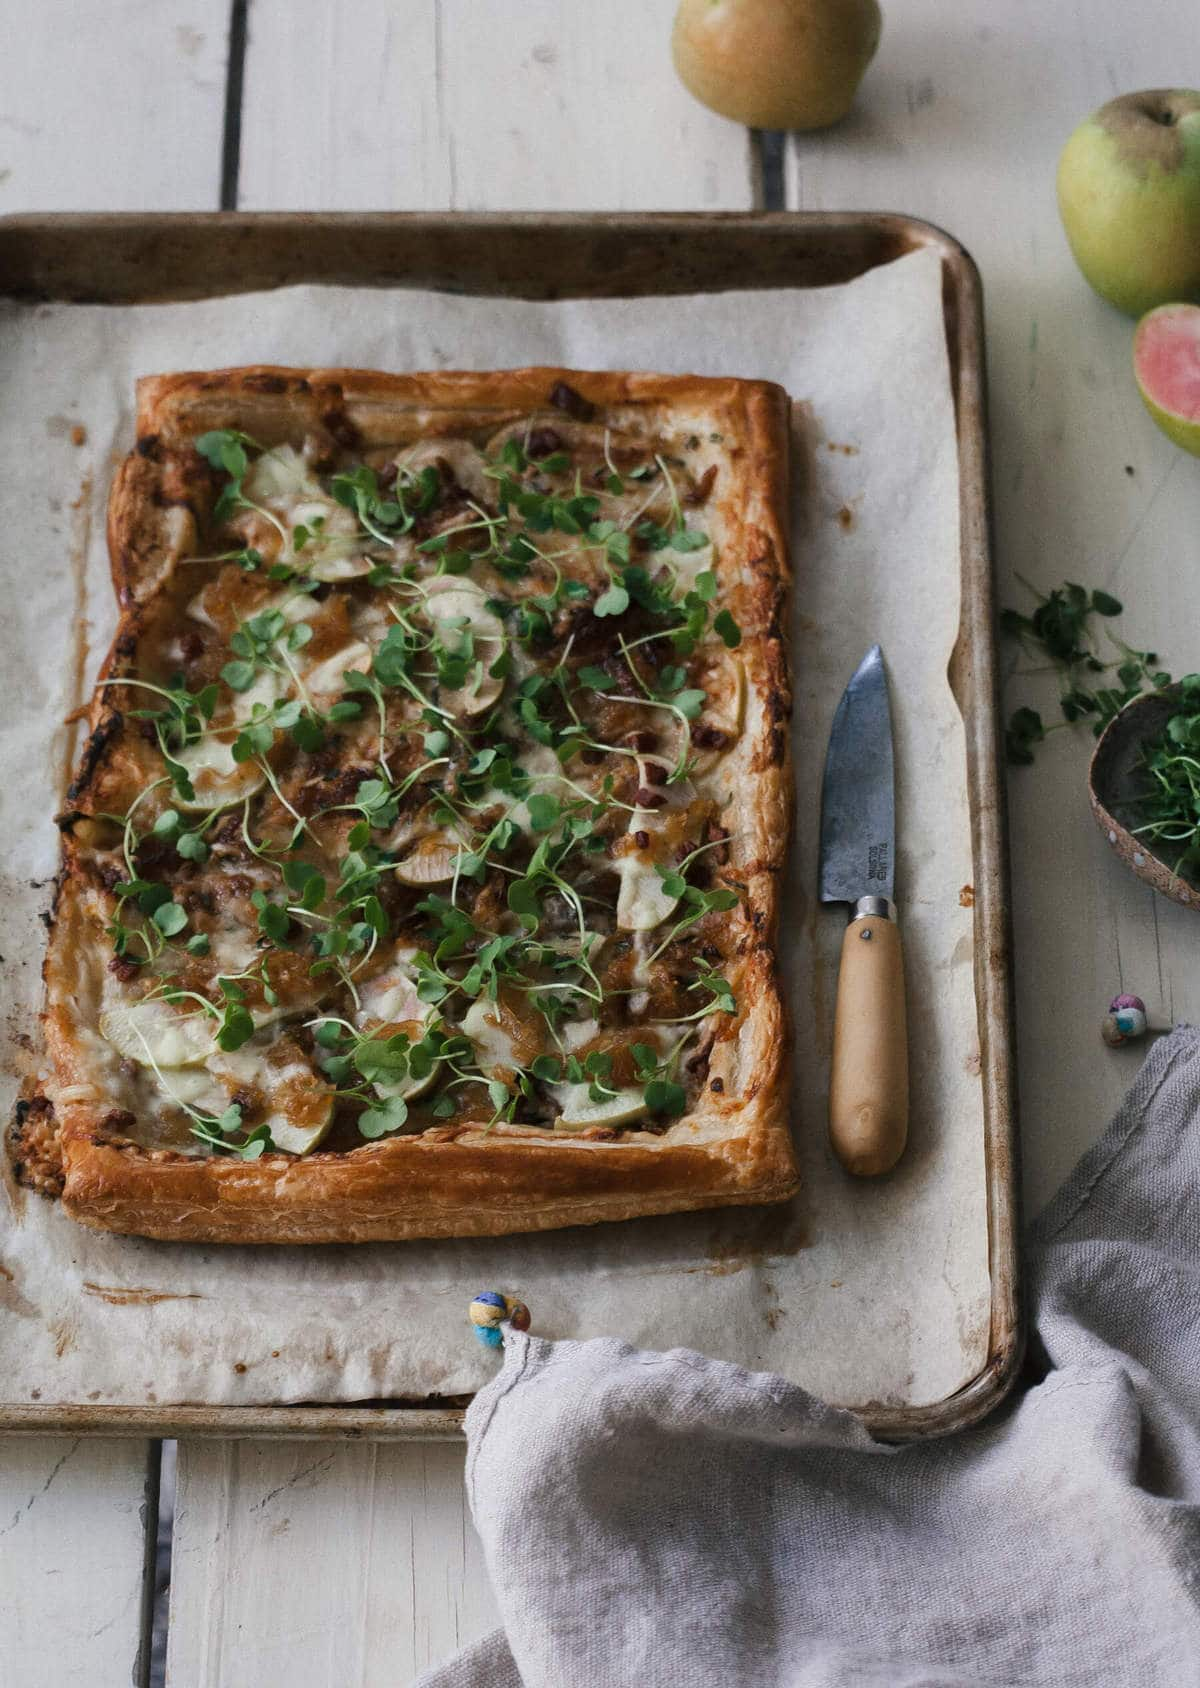 Fancy Apple Gruyere Tart with Caramelized Onions and Pancetta